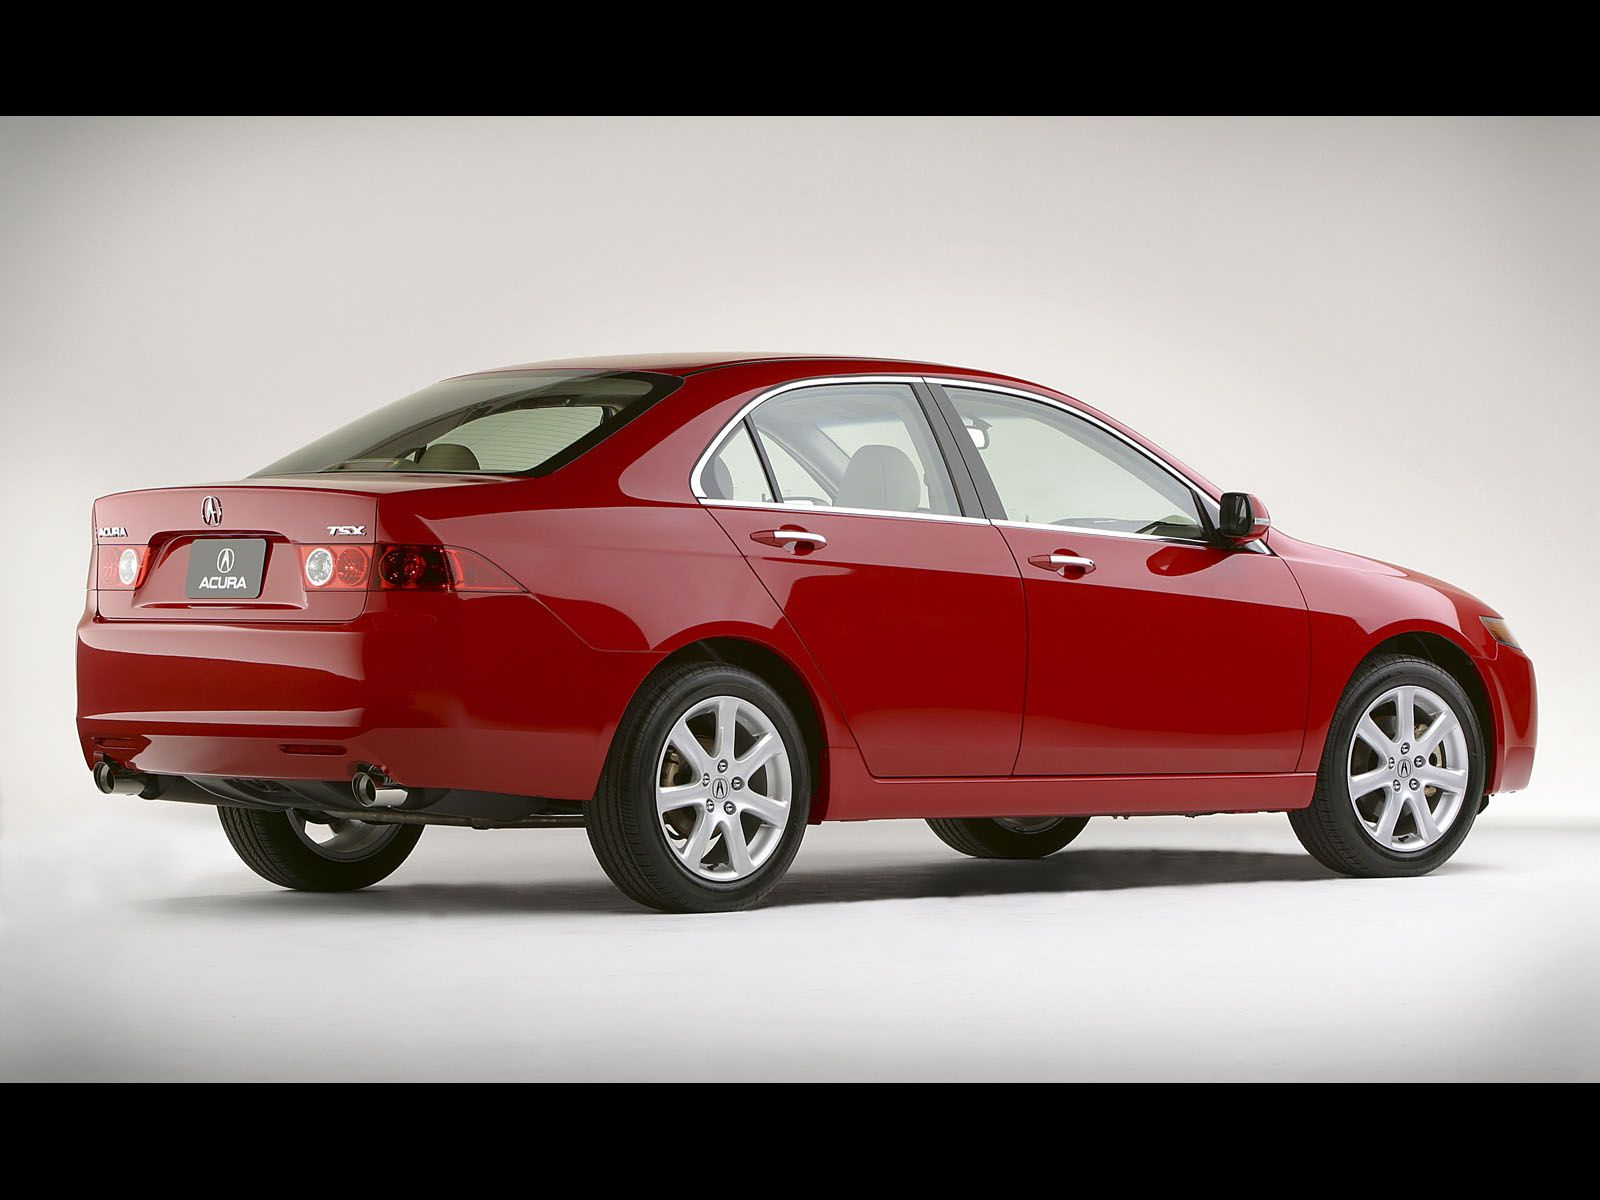 Beautiful red Acura TSX car right side view